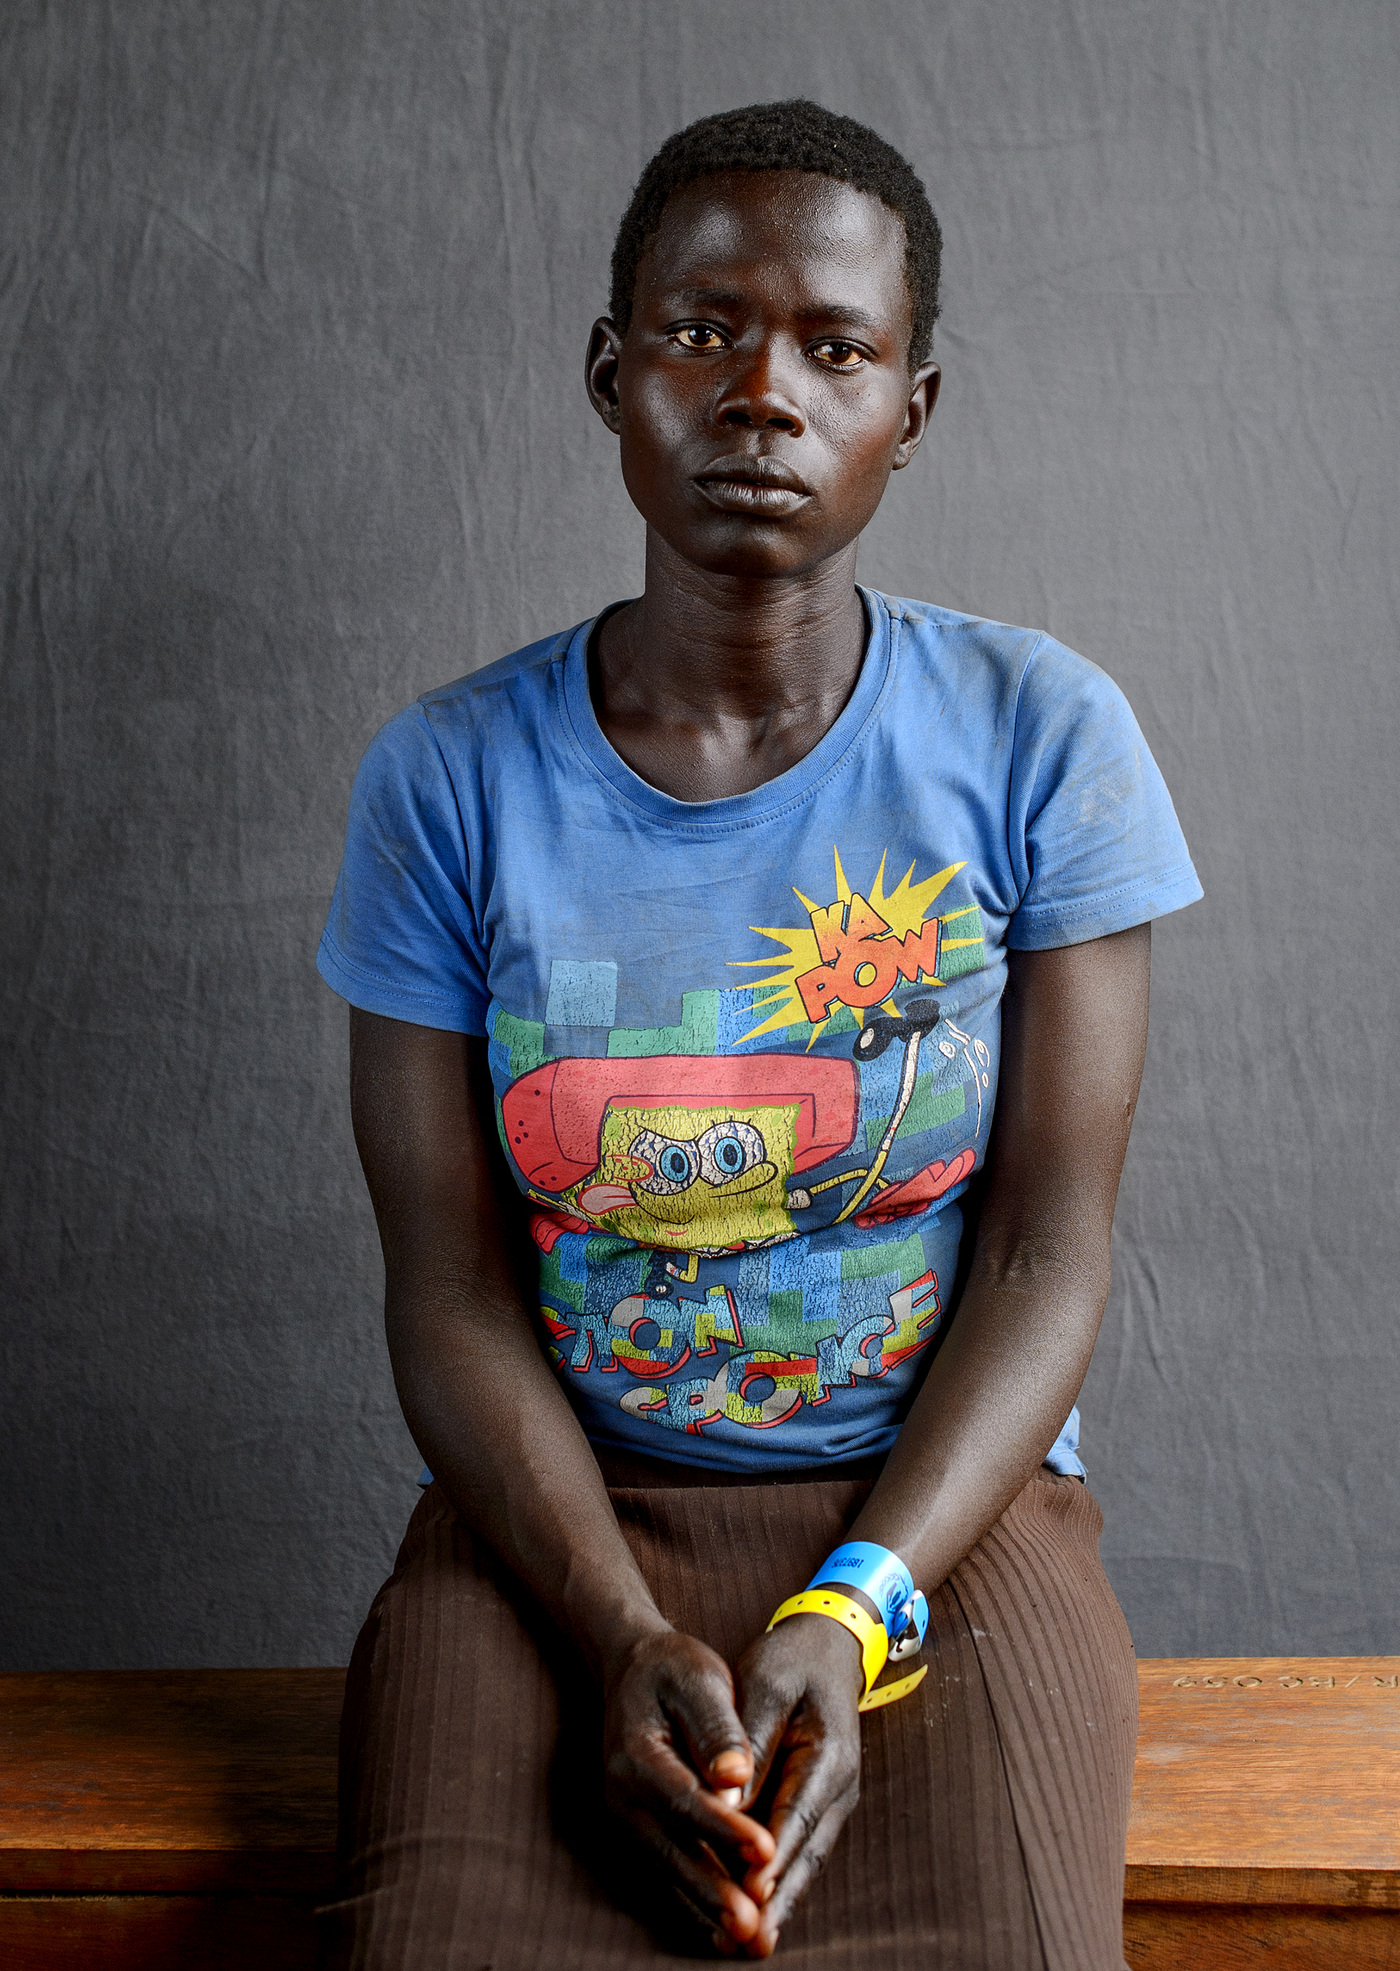 John T. Pedersen Photography - Alice Boro (36)   I escaped with my husband from our village. Before we got to the border, my husband decided to go back to bring more food.   There he was shot by the government soldiers    Im sick with heart problems and hope I can get medical help here in Uganda.   Alice walked for two weeks with her five children from the village of Wugi.